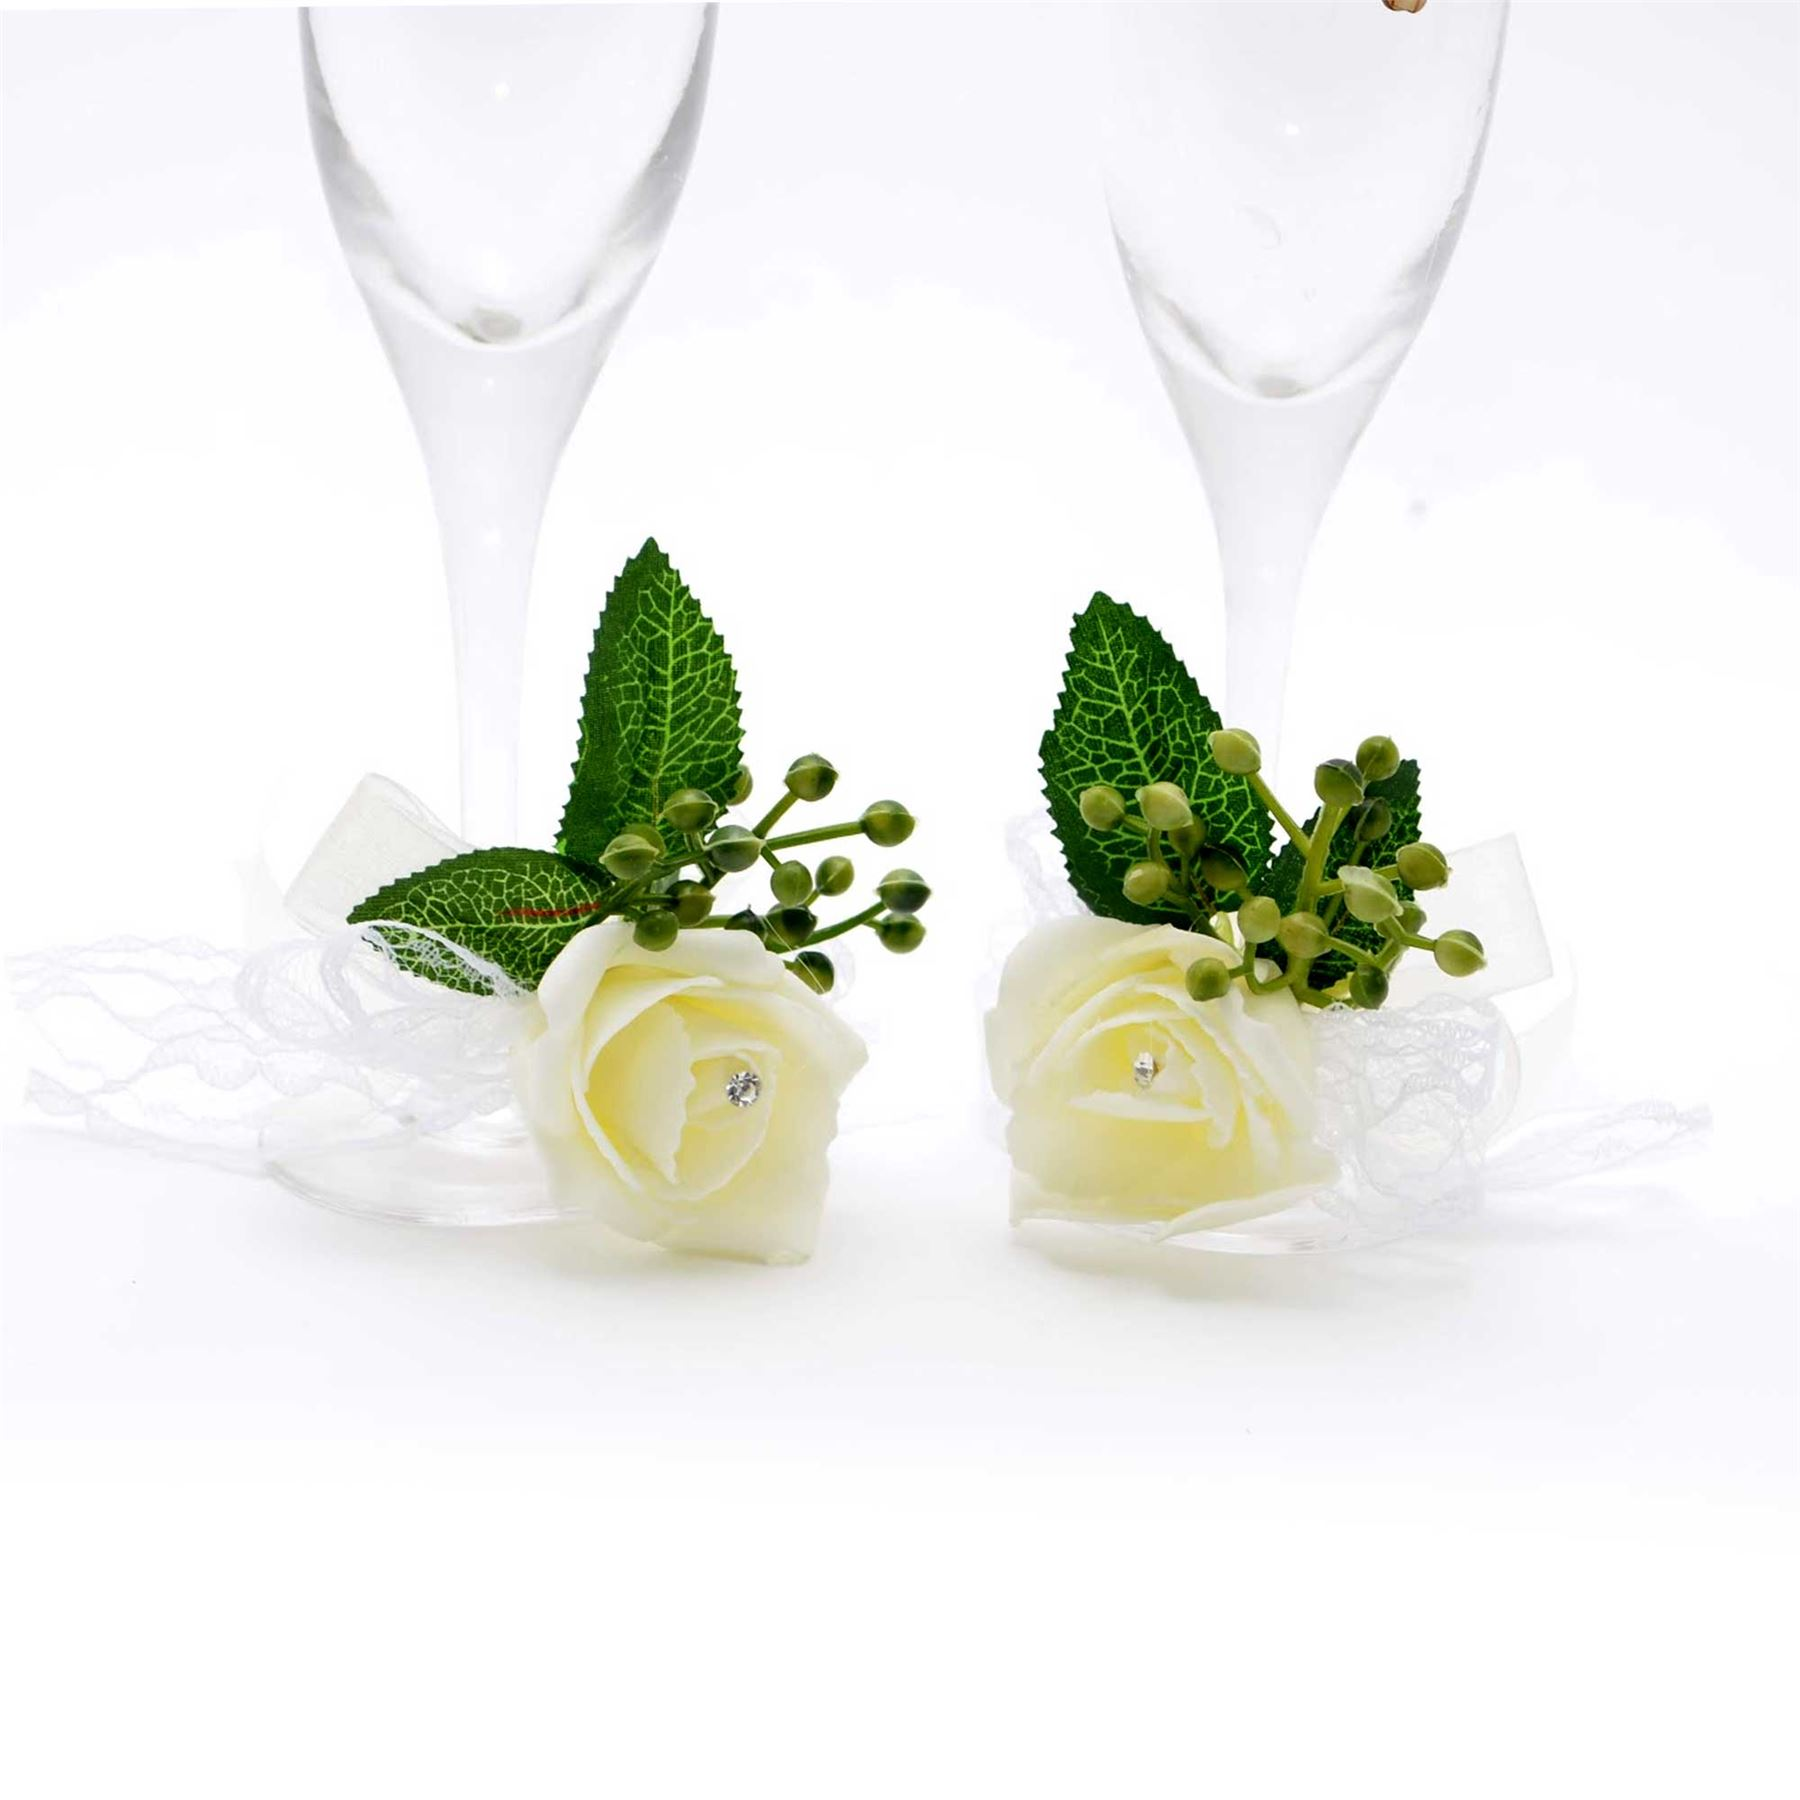 Bride-amp-Groom-Mr-Mrs-Champagne-Glasses-Flutes-Toasting-Wedding-Decorations-Gifts thumbnail 4